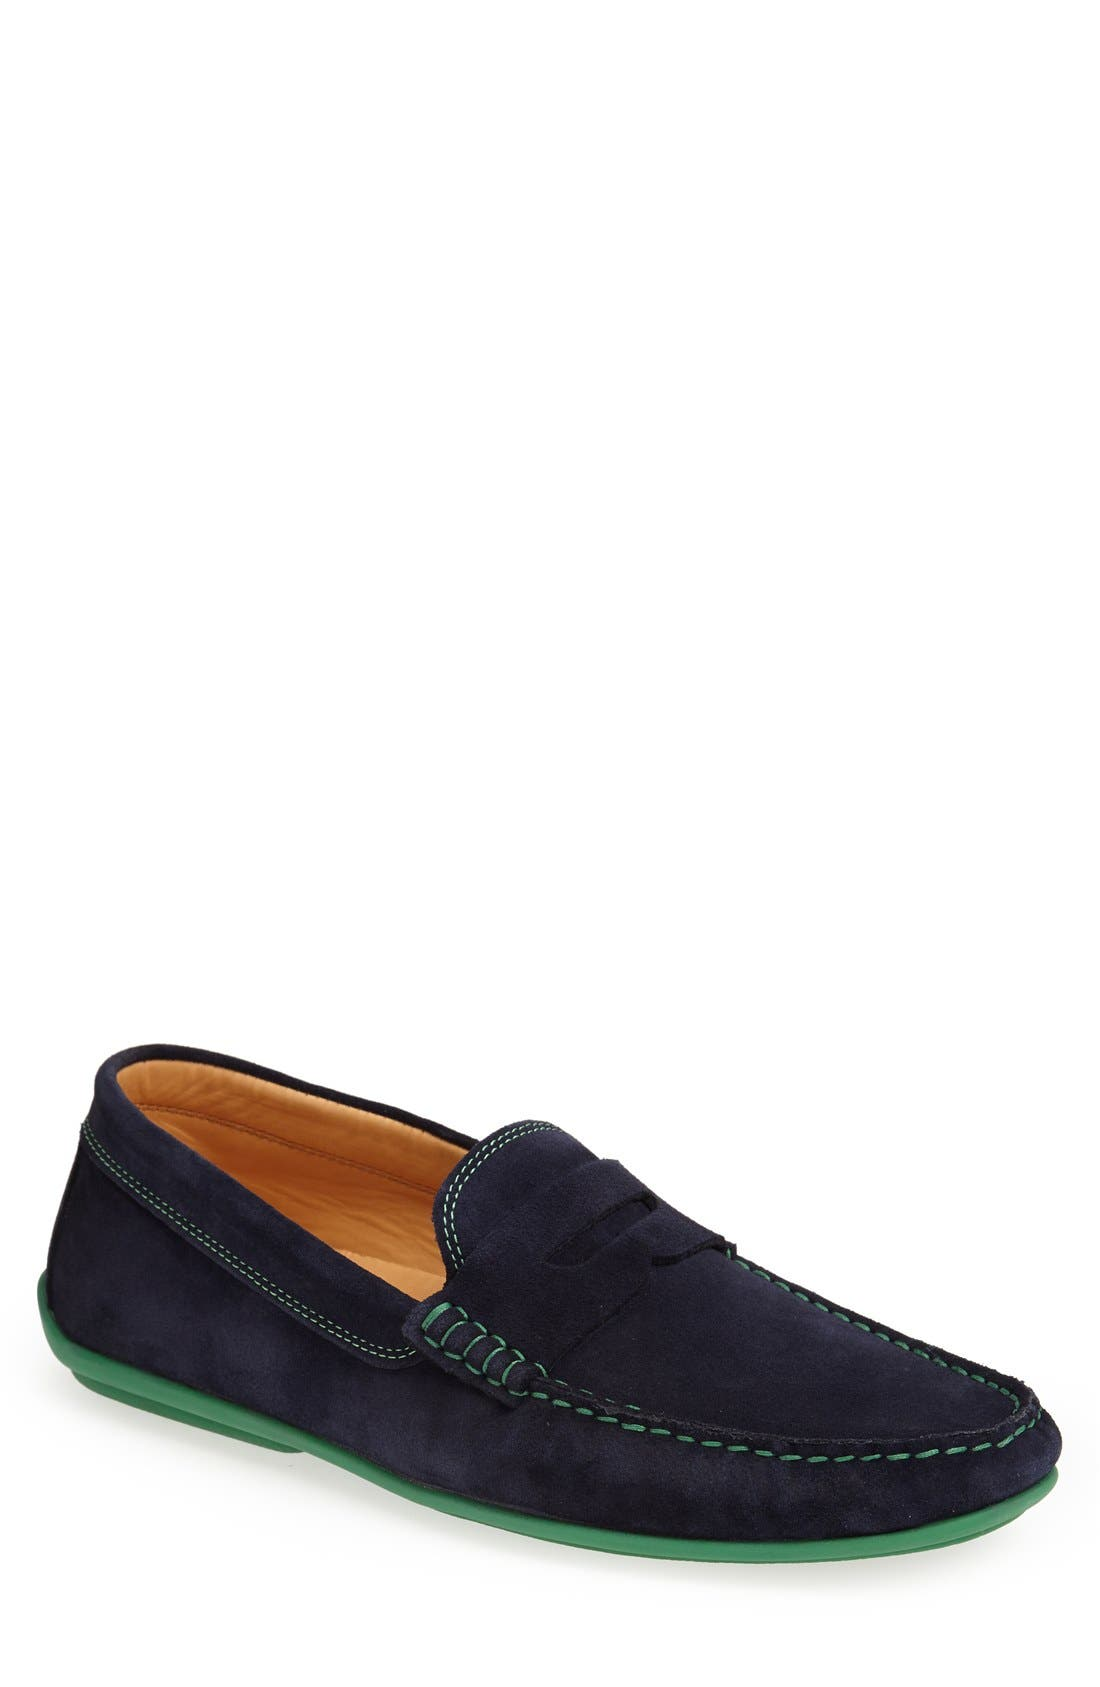 Austen Heller 'Chathams' Penny Loafer (Men)